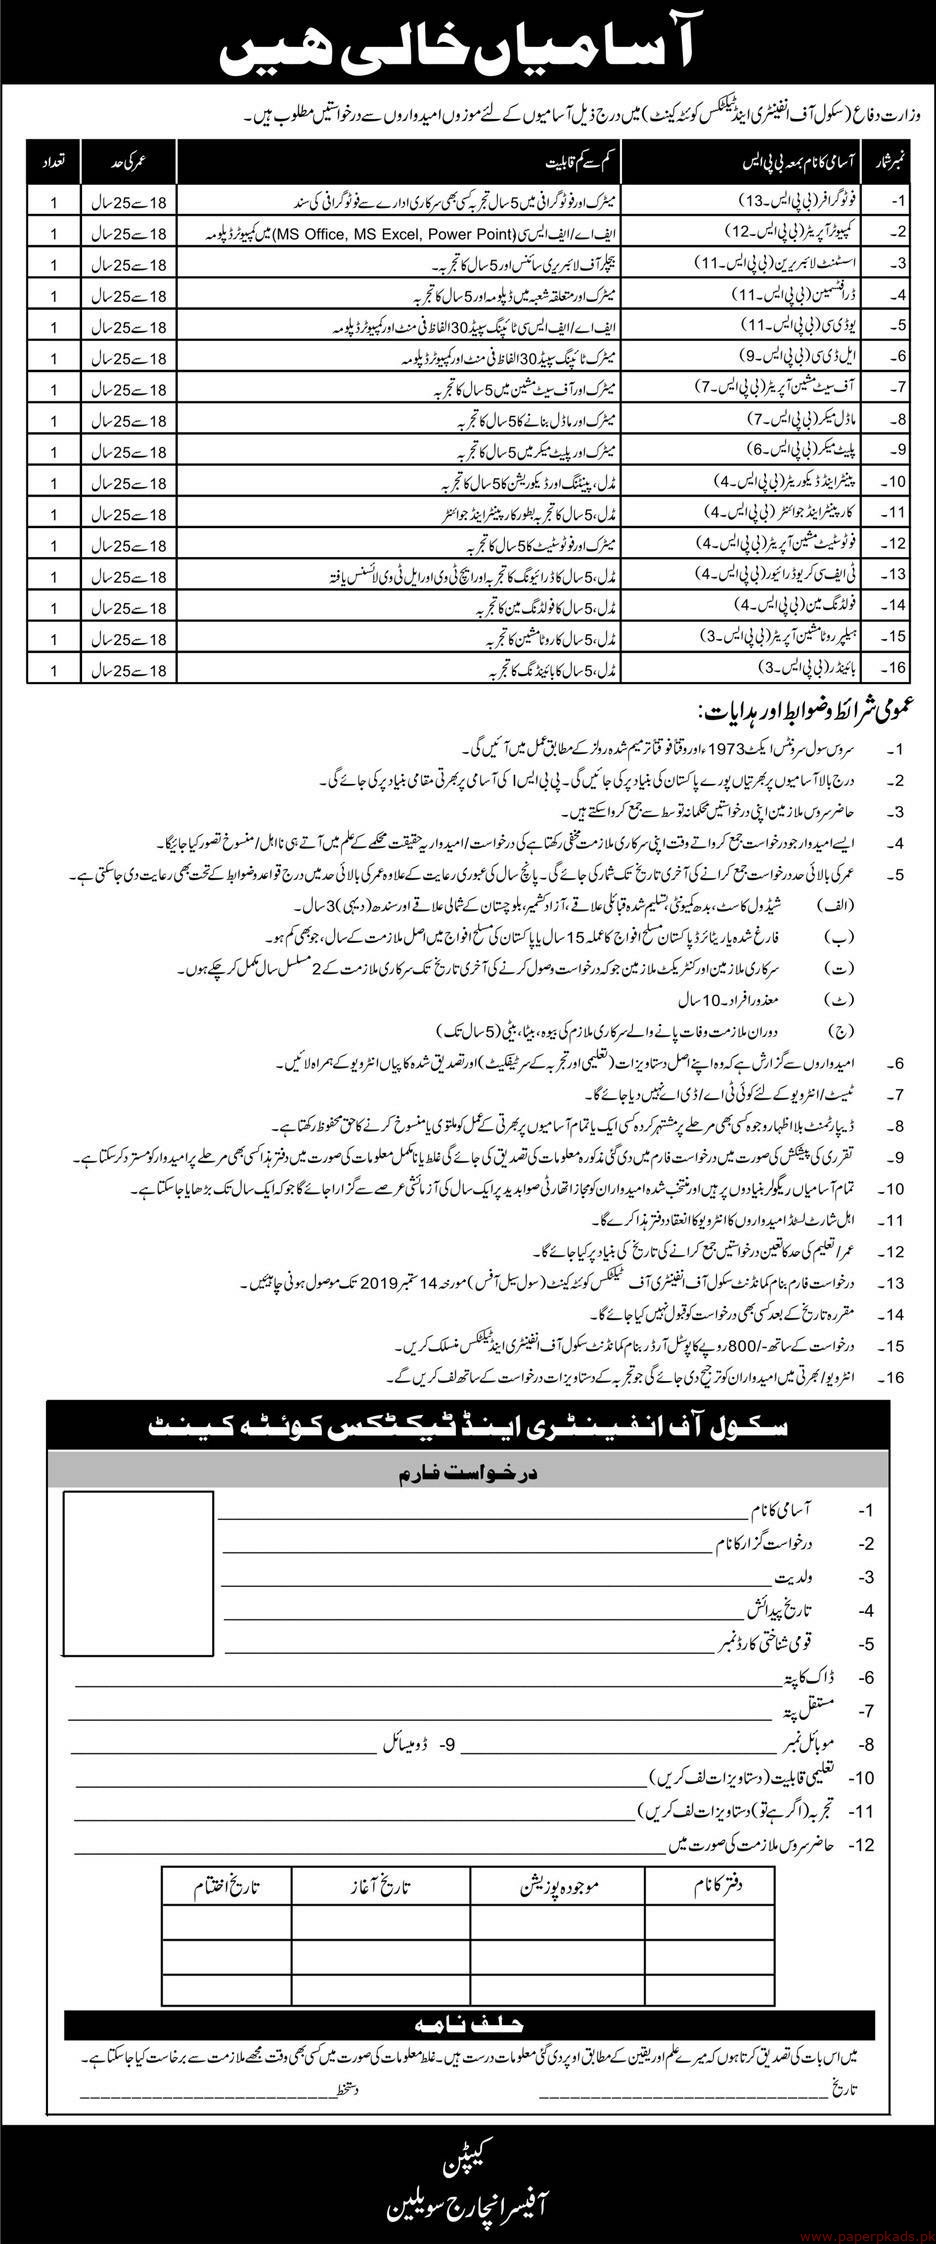 Ministry of Defence Jobs 2019 Latest